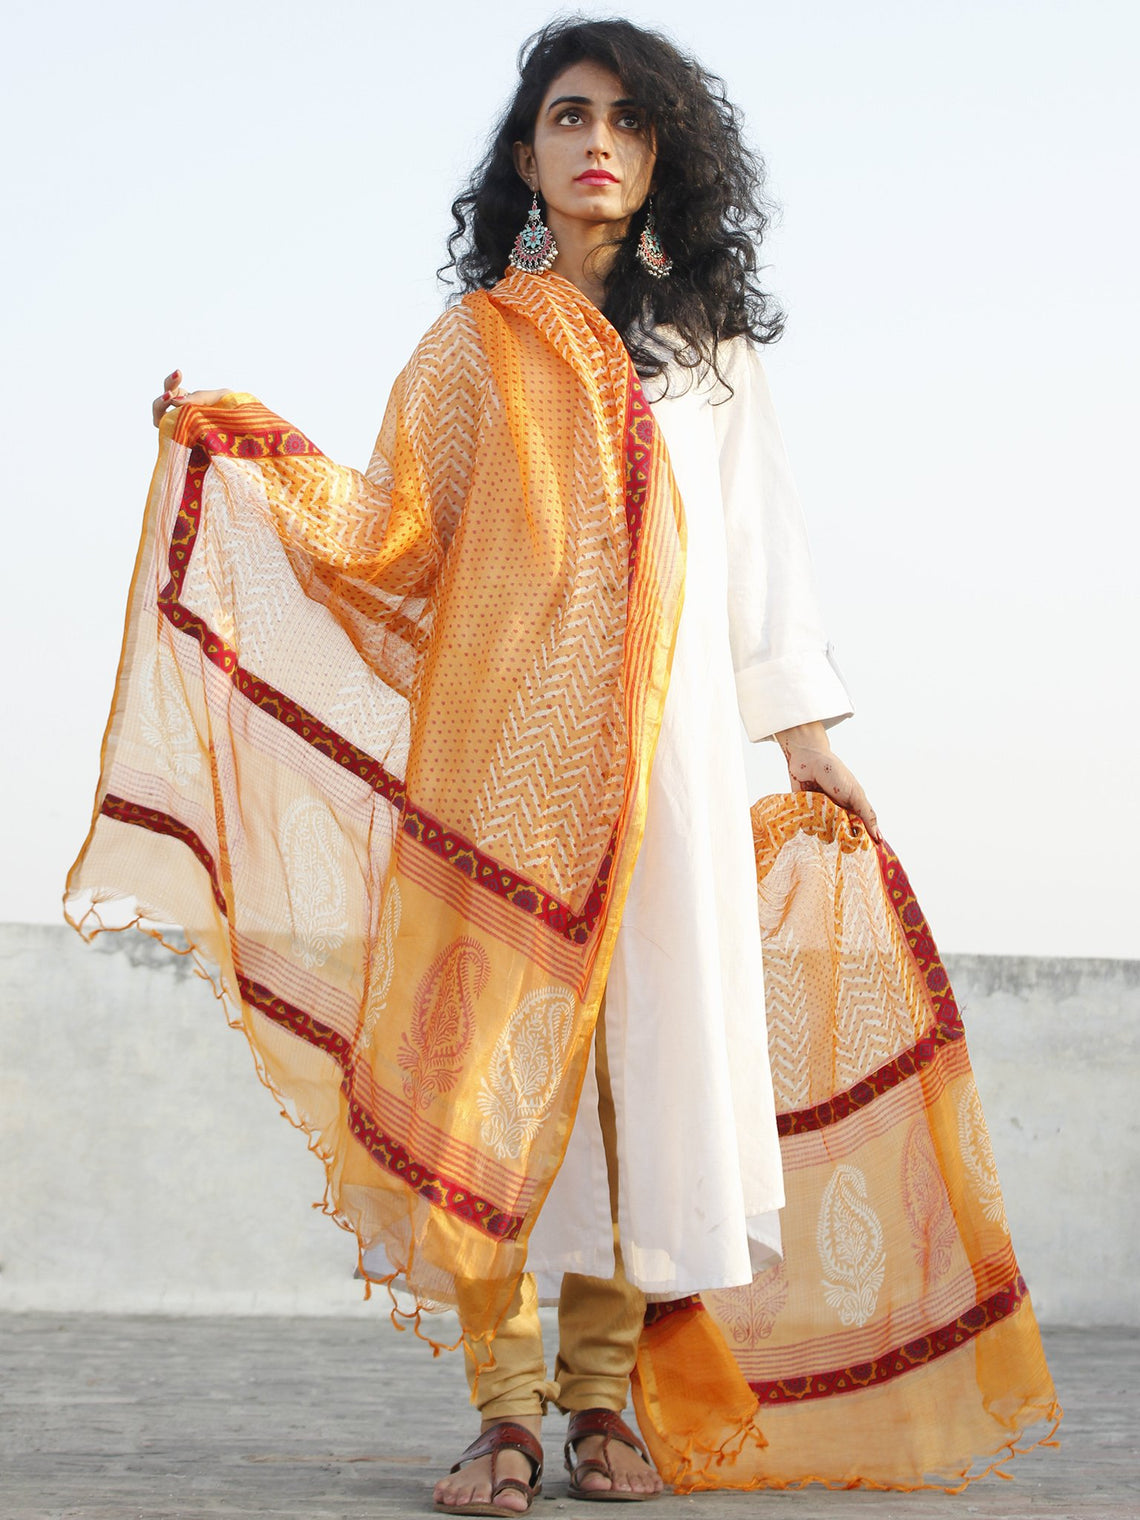 Orange Ivory Kota Silk Hand Black Printed Dupatta With Ajrakh Printed Stitched Border  - D04170127